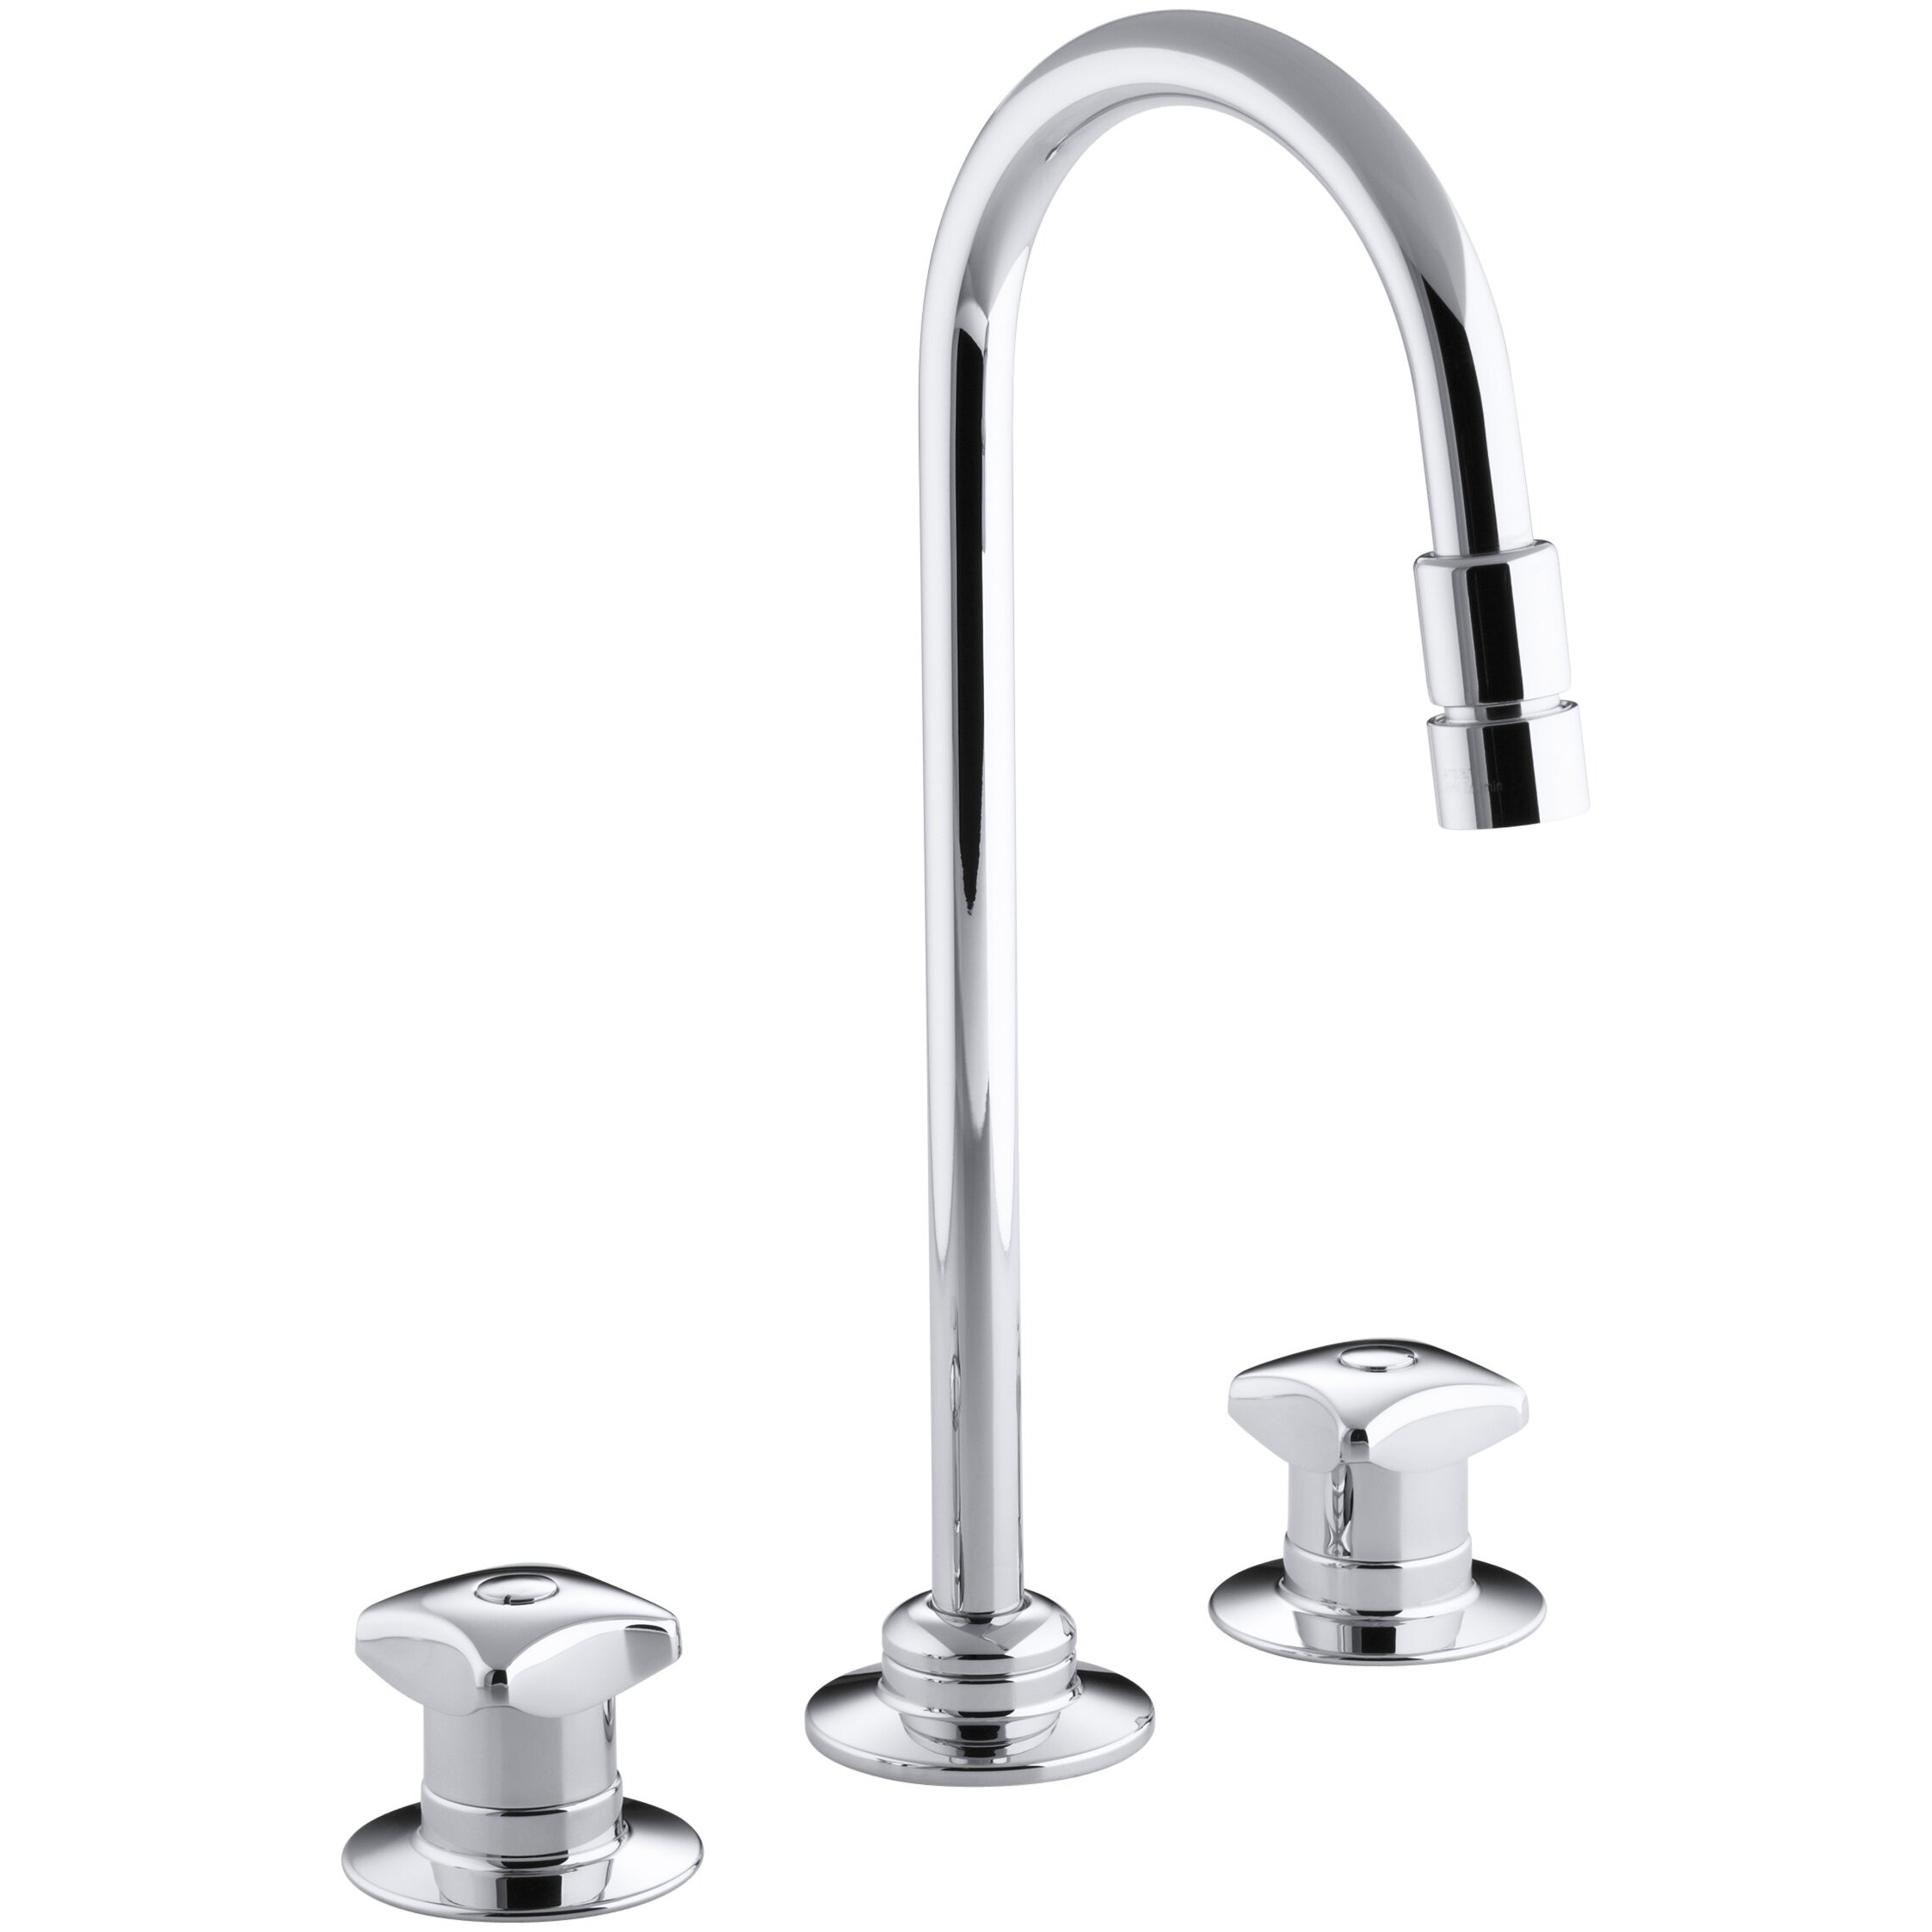 Kohler Triton Widespread Commercial Bathroom Sink Faucet With Rigid Connections And Gooseneck